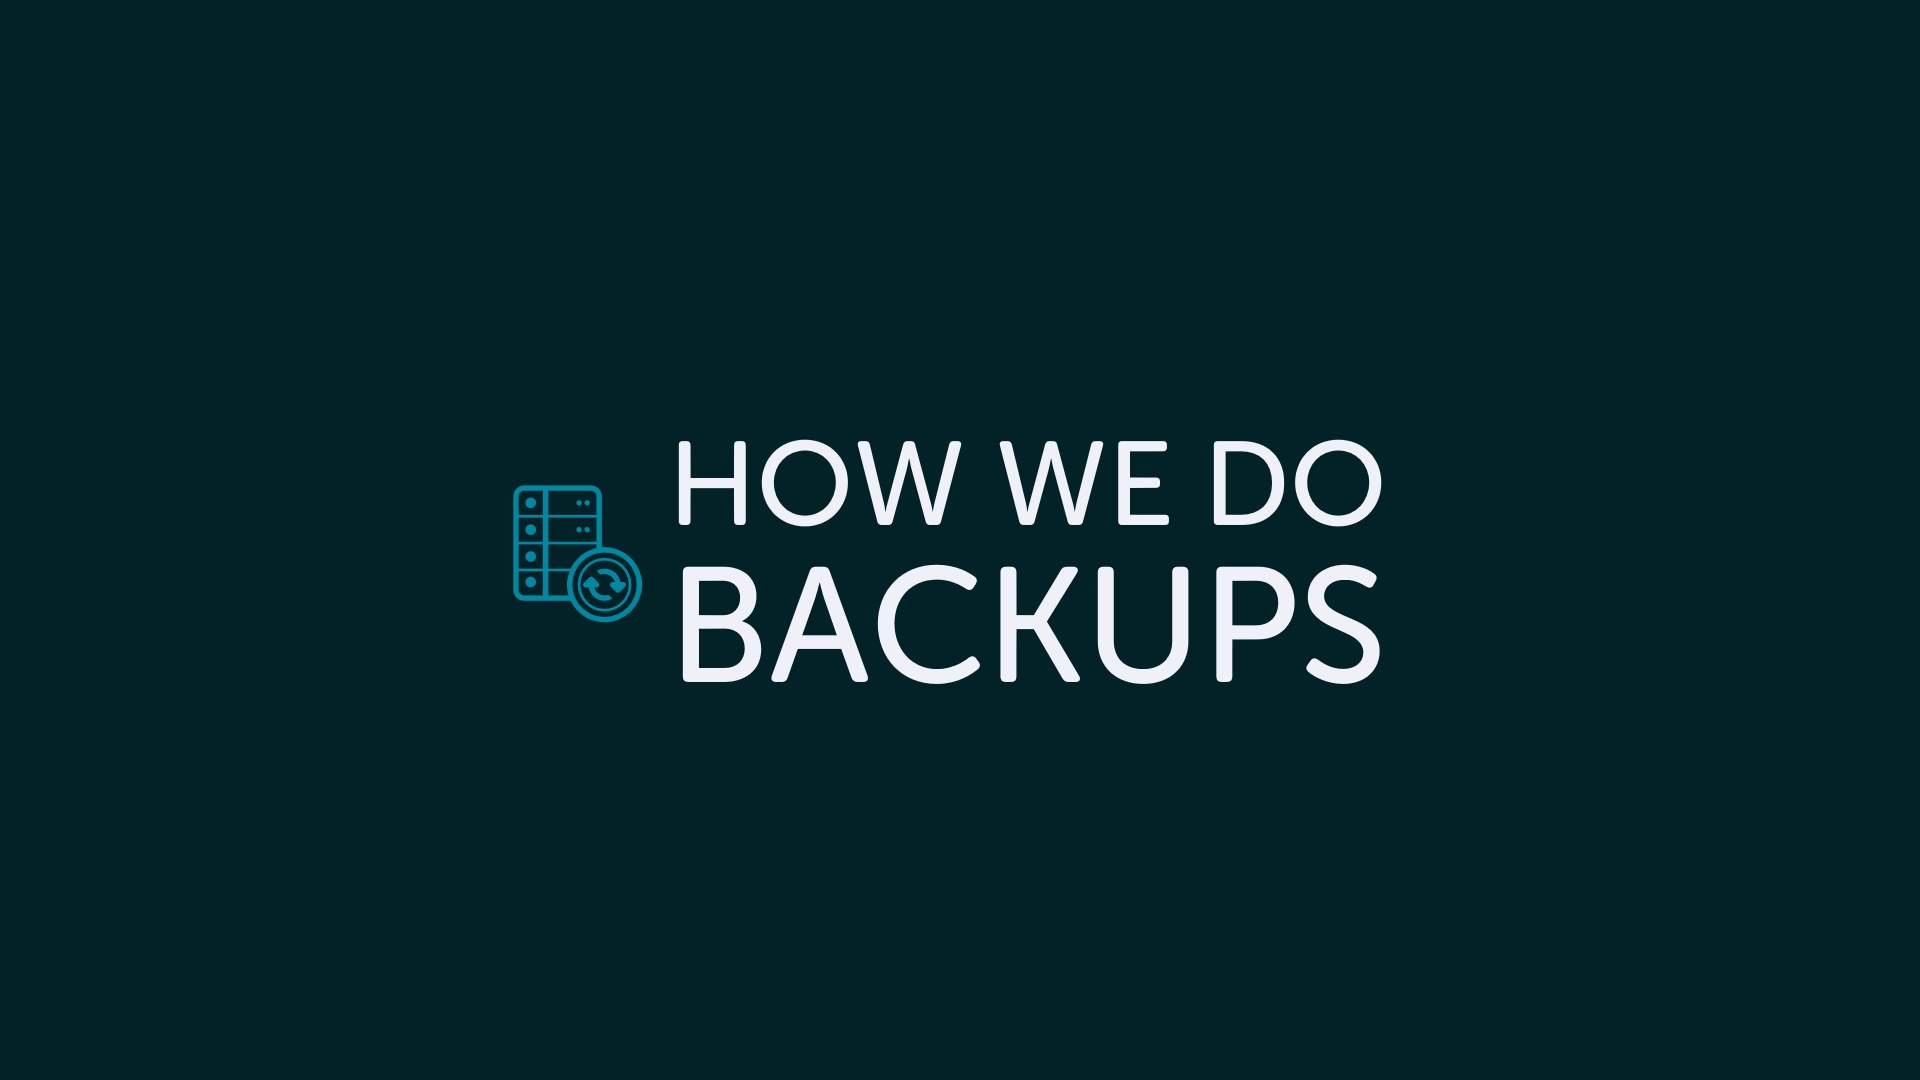 Simple_Press_ How We Do Backups